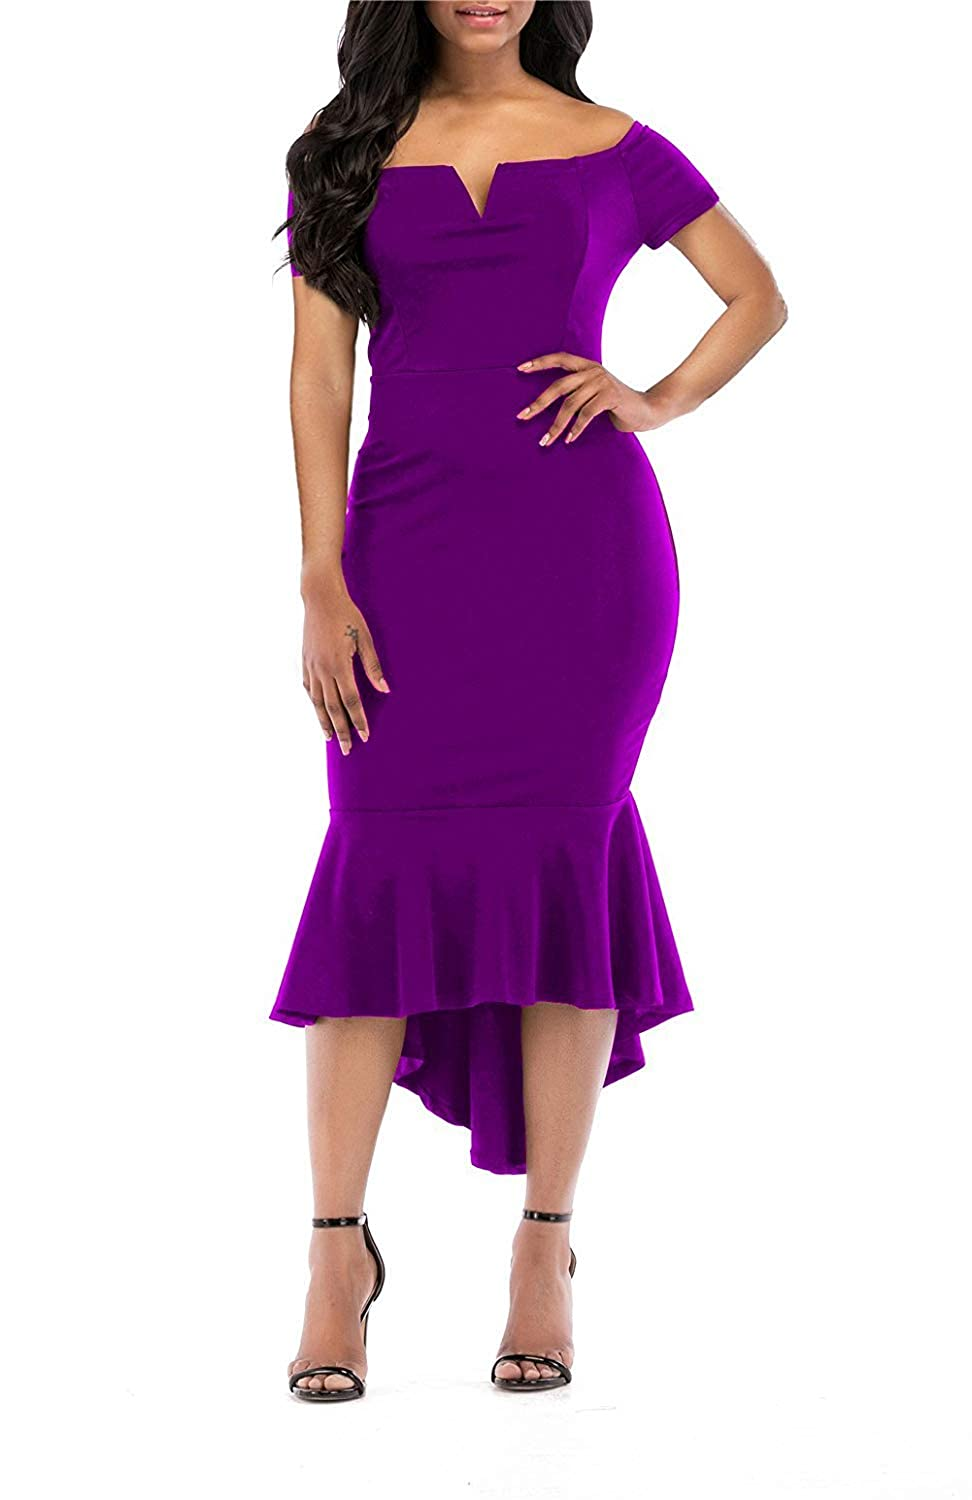 TALLA XL. KISSMODA Vestidos Midi para Mujer Off The Shoulder High Low Bodycon Vestido de Noche de Sirena S-púrpura XL